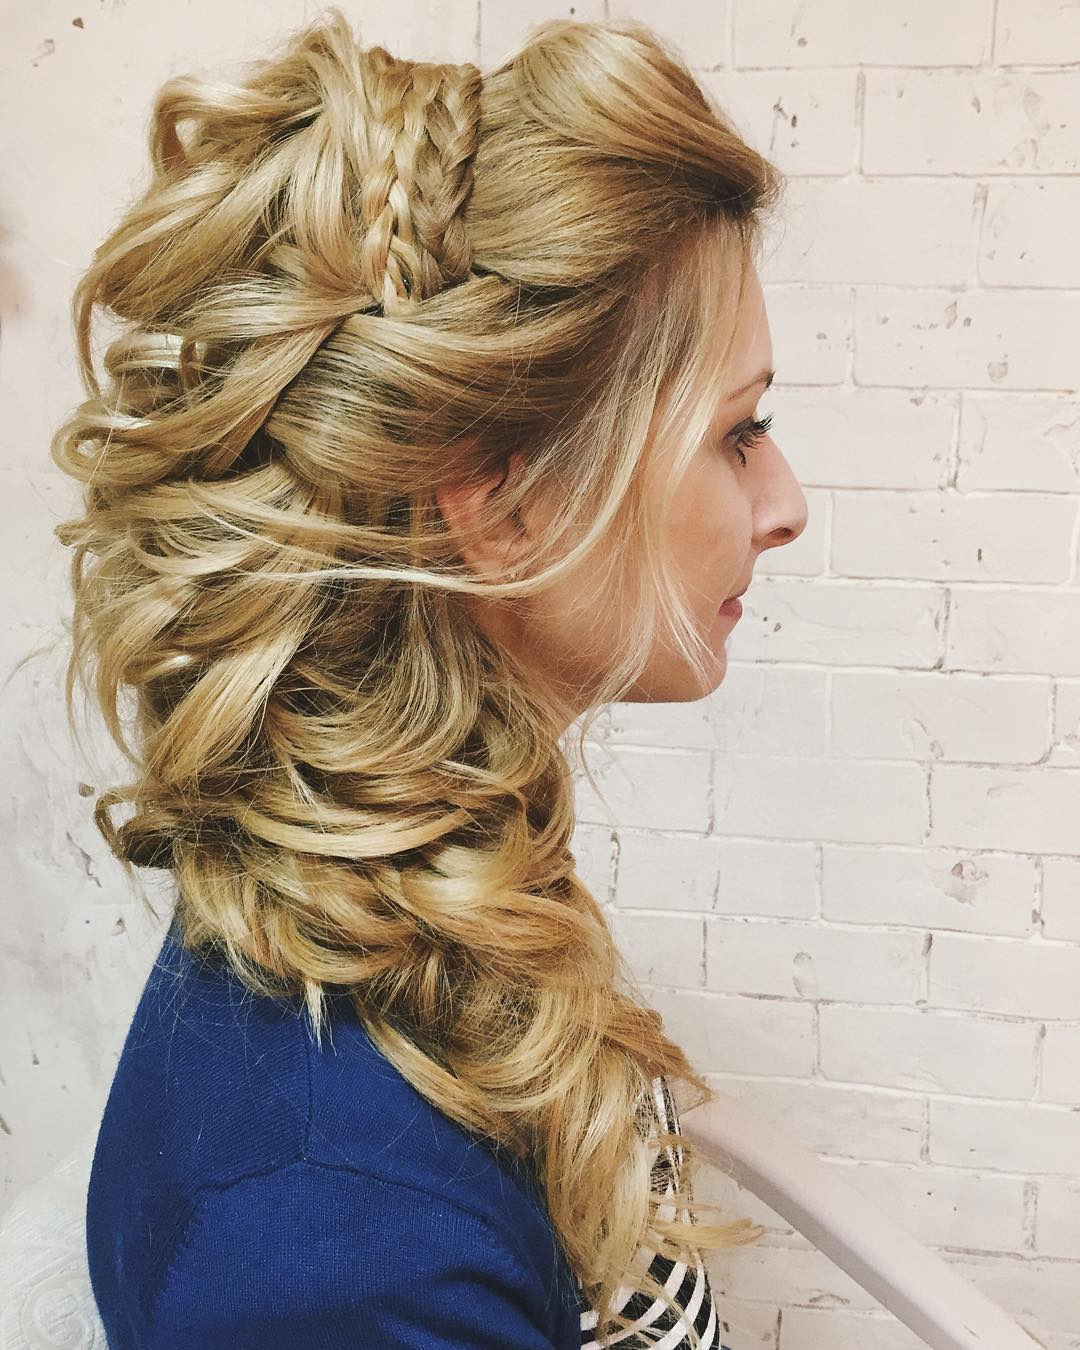 Wedding Hairstyle With Braids: 10 Lavish Wedding Hairstyles For Long Hair